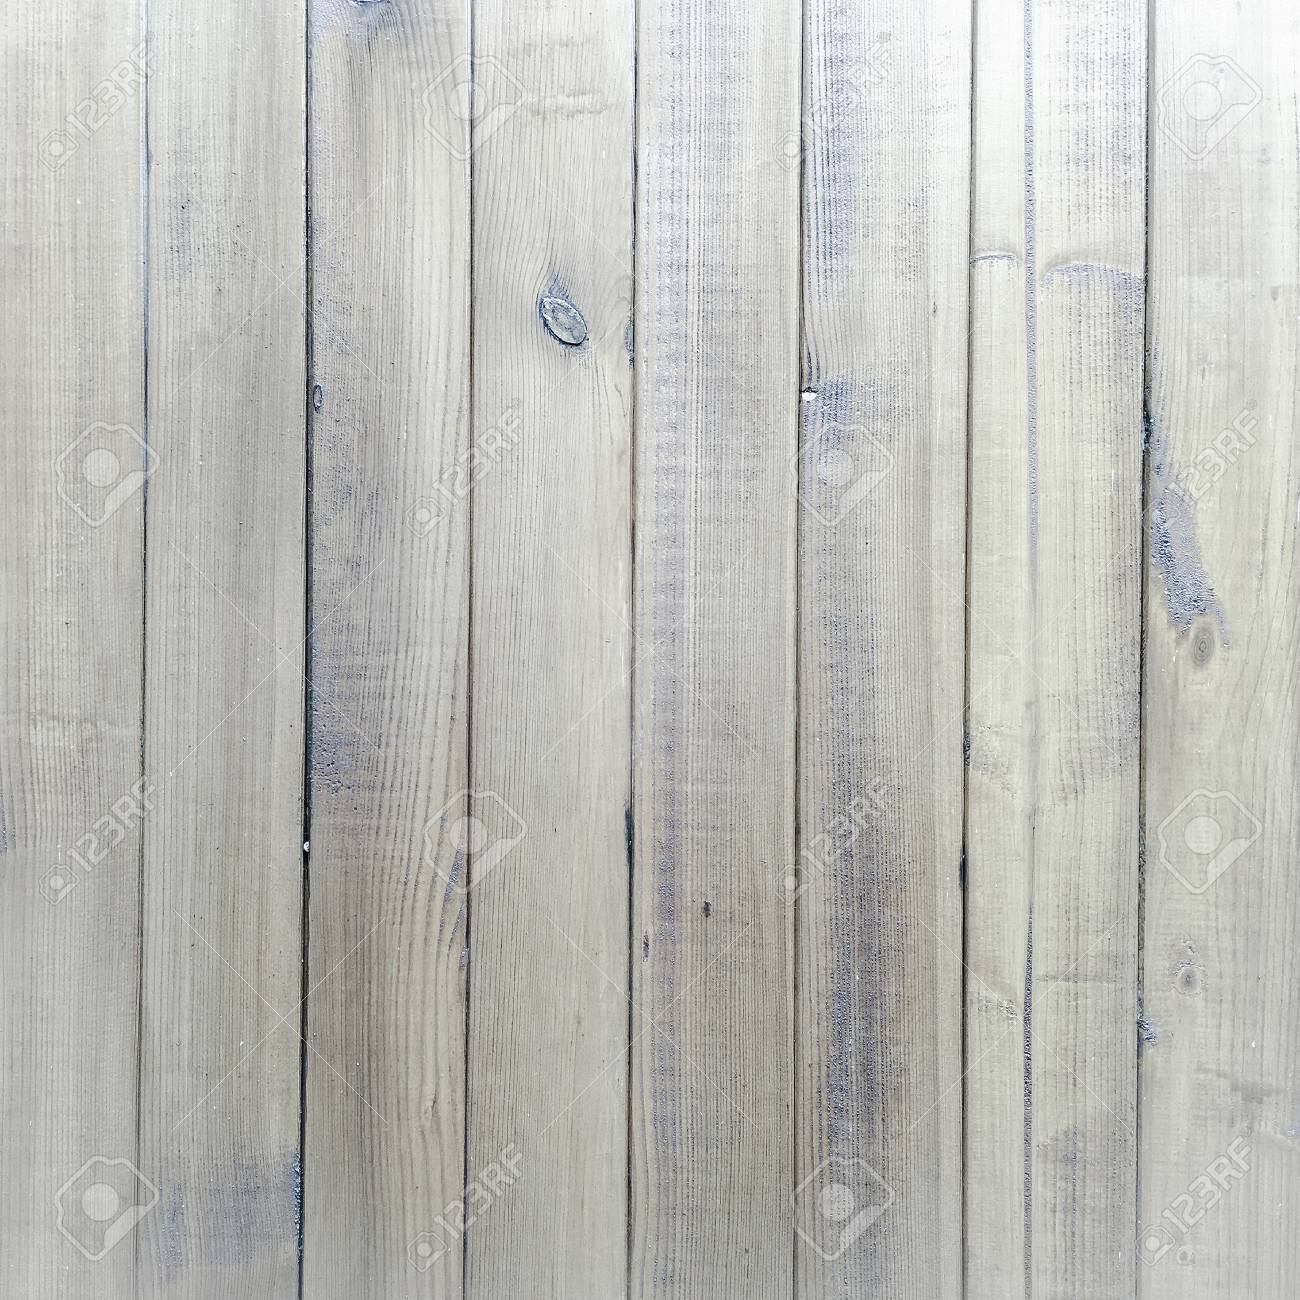 black painted wood texture. Archivio Fotografico - Light Wood Texture Background, White Planks. Old Grunge Washed Wood, Painted Wooden Table Pattern Top View Black E